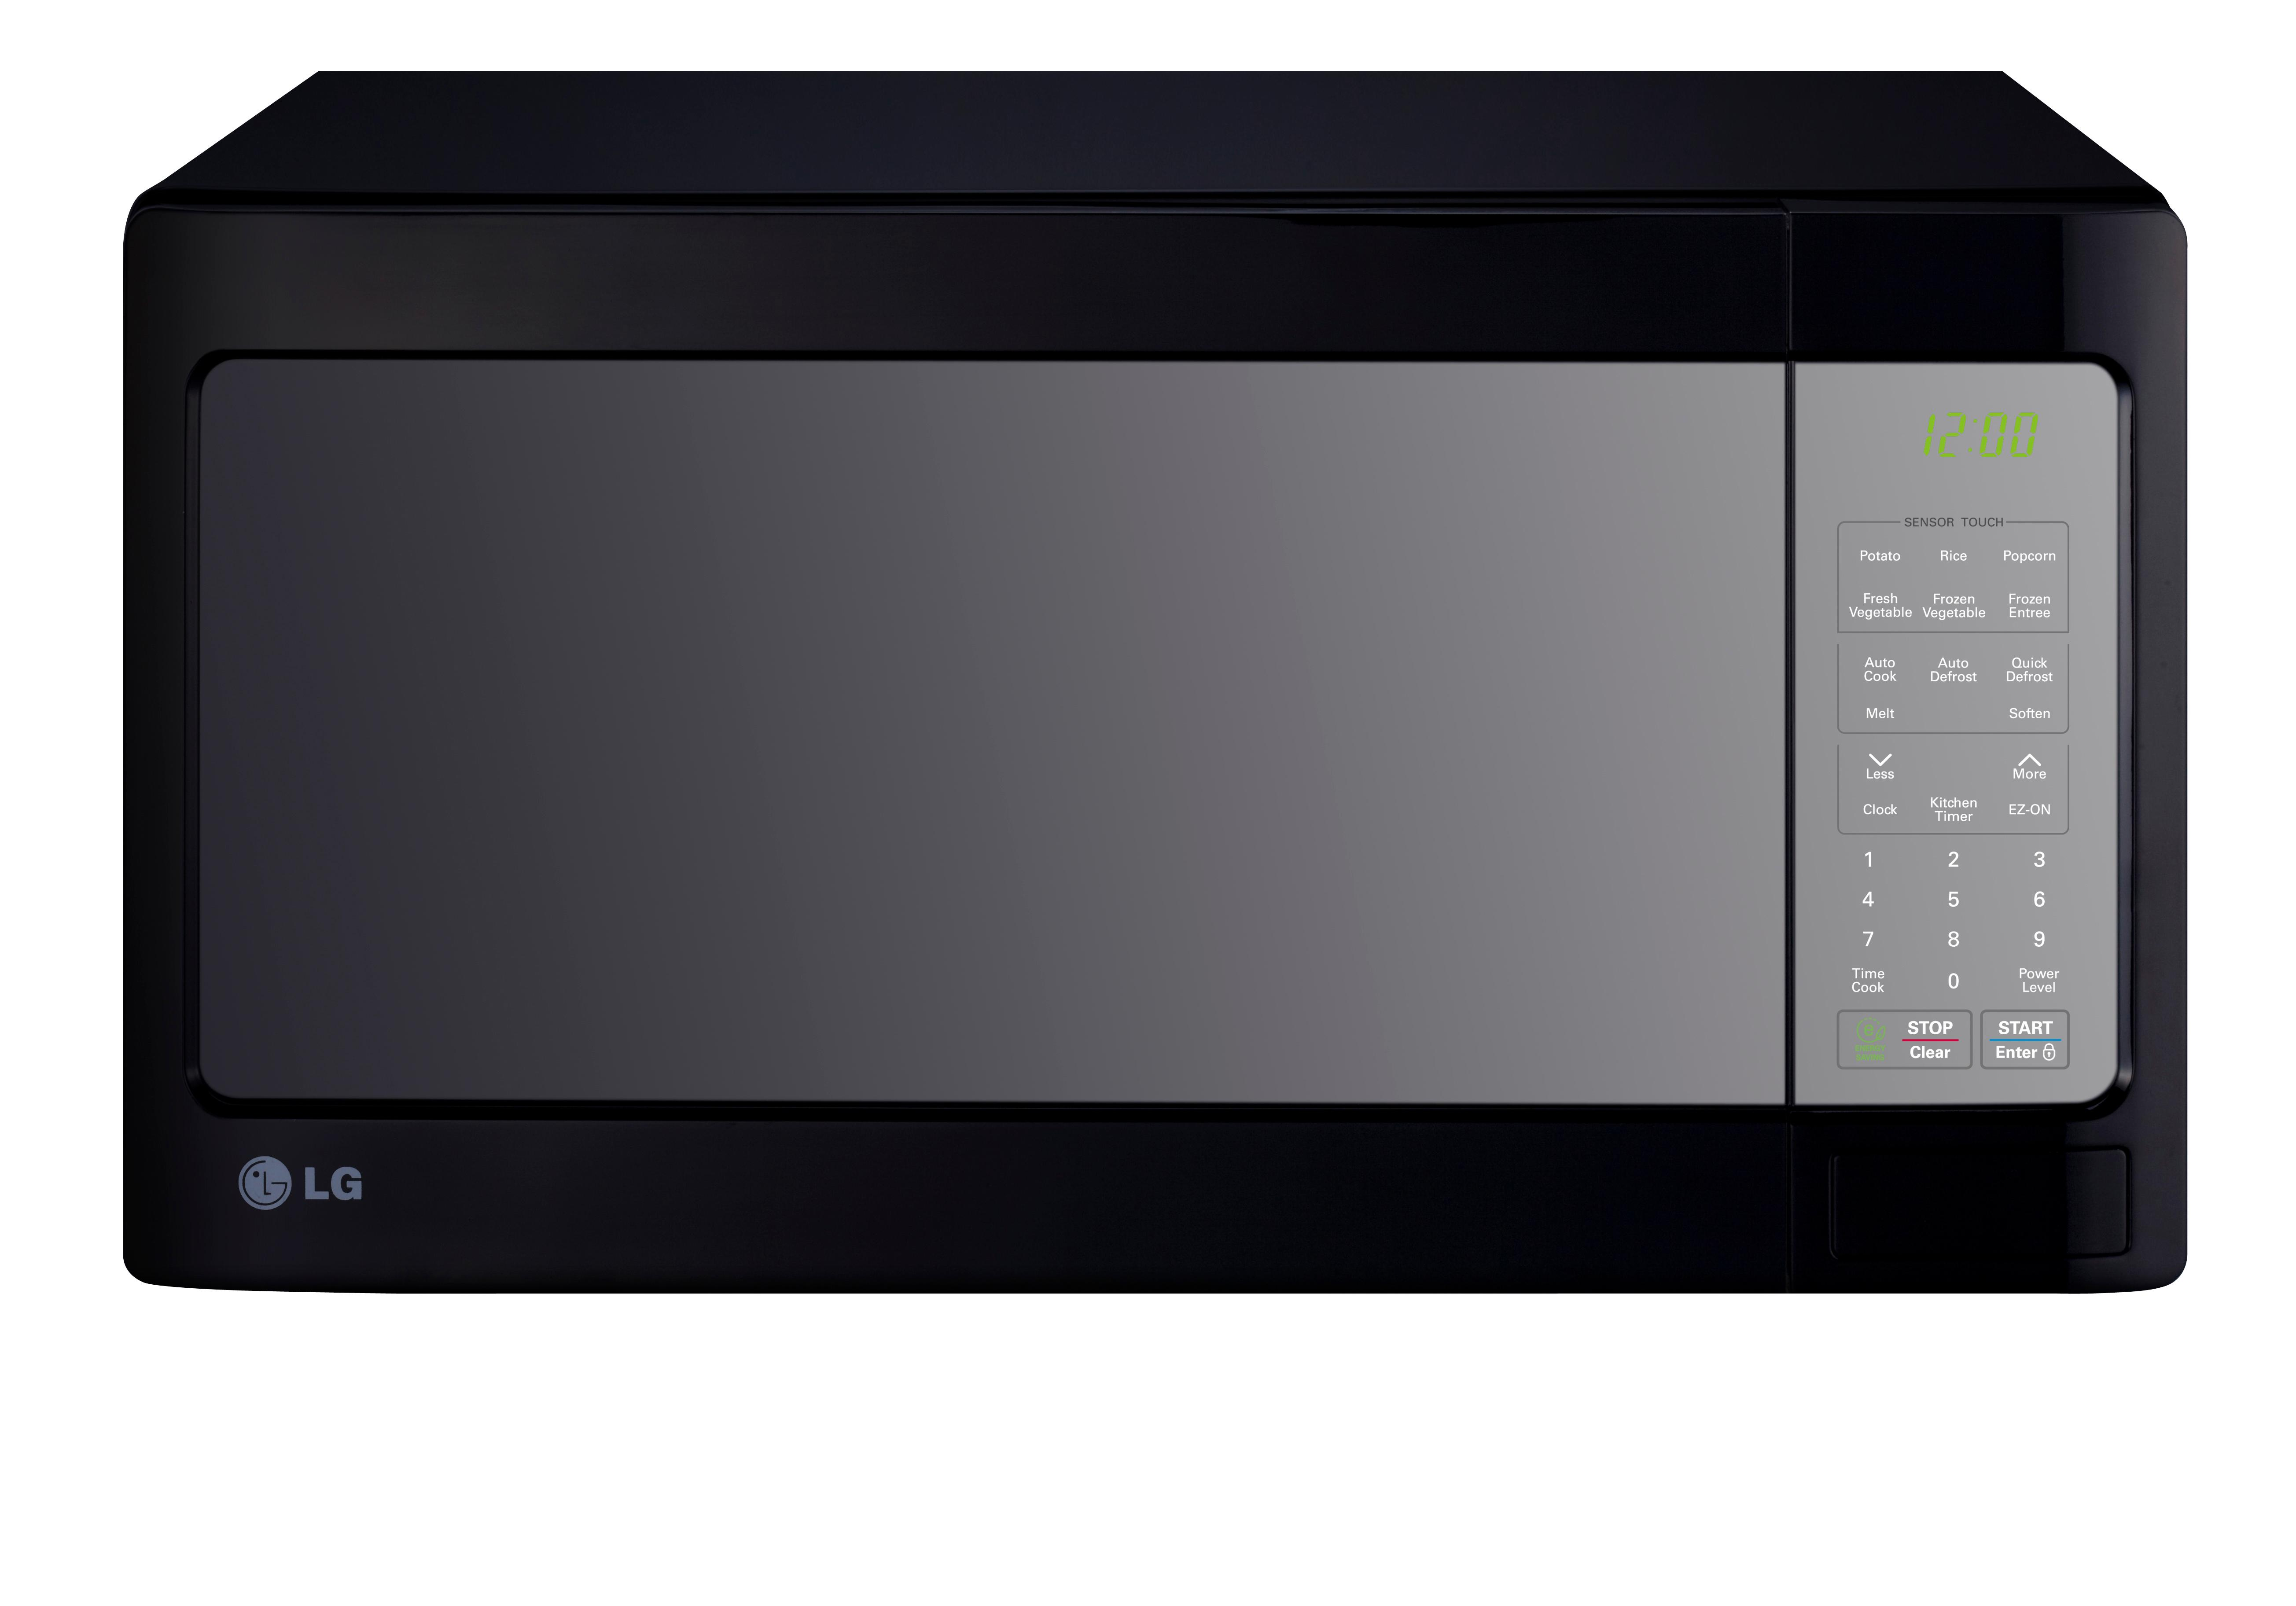 Lg Countertop Microwave Reviews : Amazon.com: LG 1.4 Cu. Ft. Countertop Microwave Oven with EasyClean ...